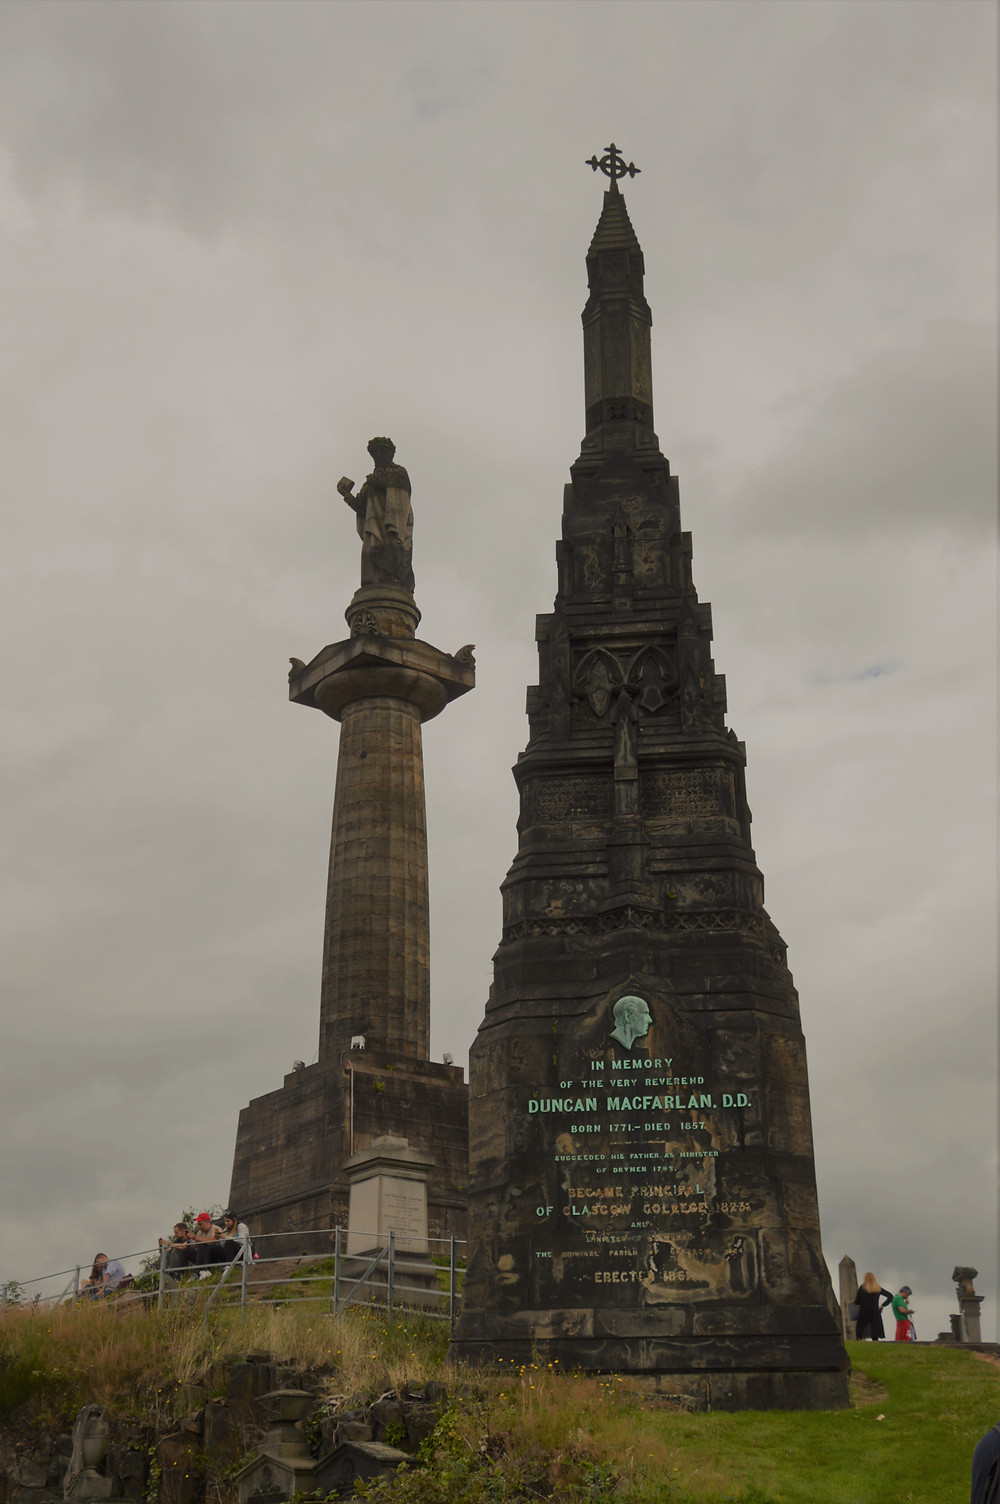 Two stone towers dominate the Necropolis. The John Knox monument and the Duncan Macfarlan memorial